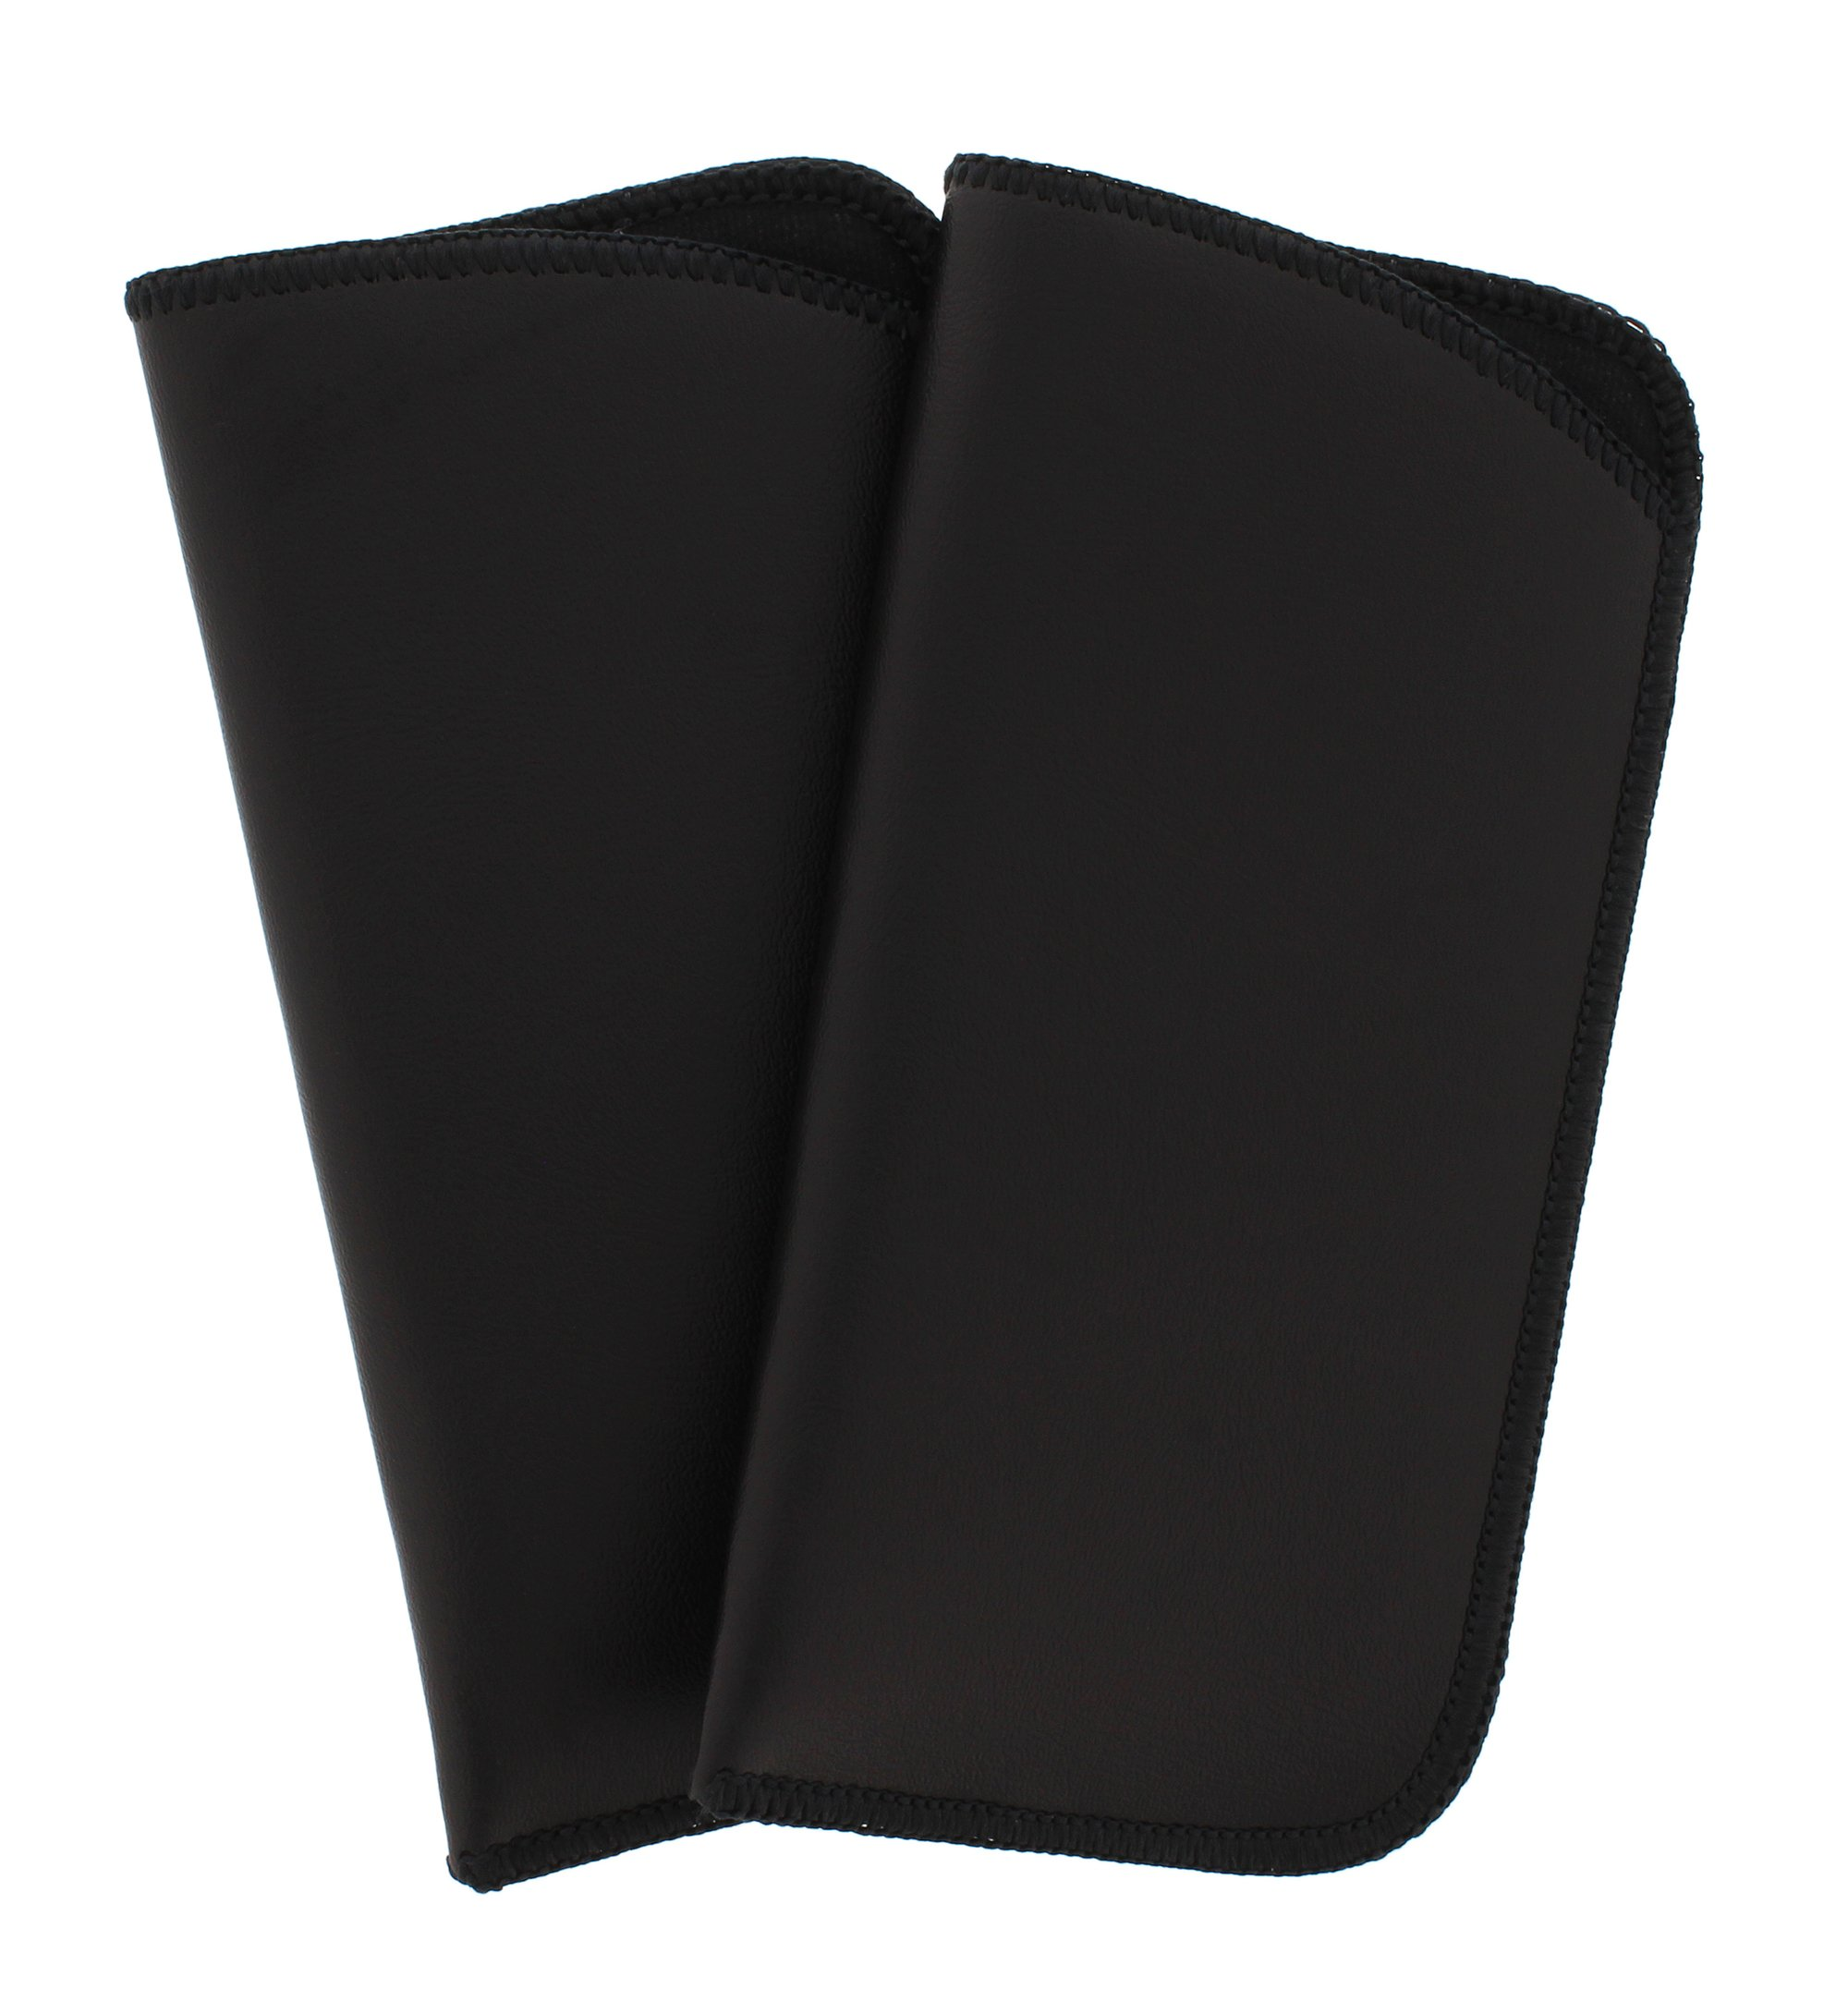 2 Pack Soft Faux Leather Slip In Eyeglass Case, Fits Medium to Large Frames, Black by Ear Mitts